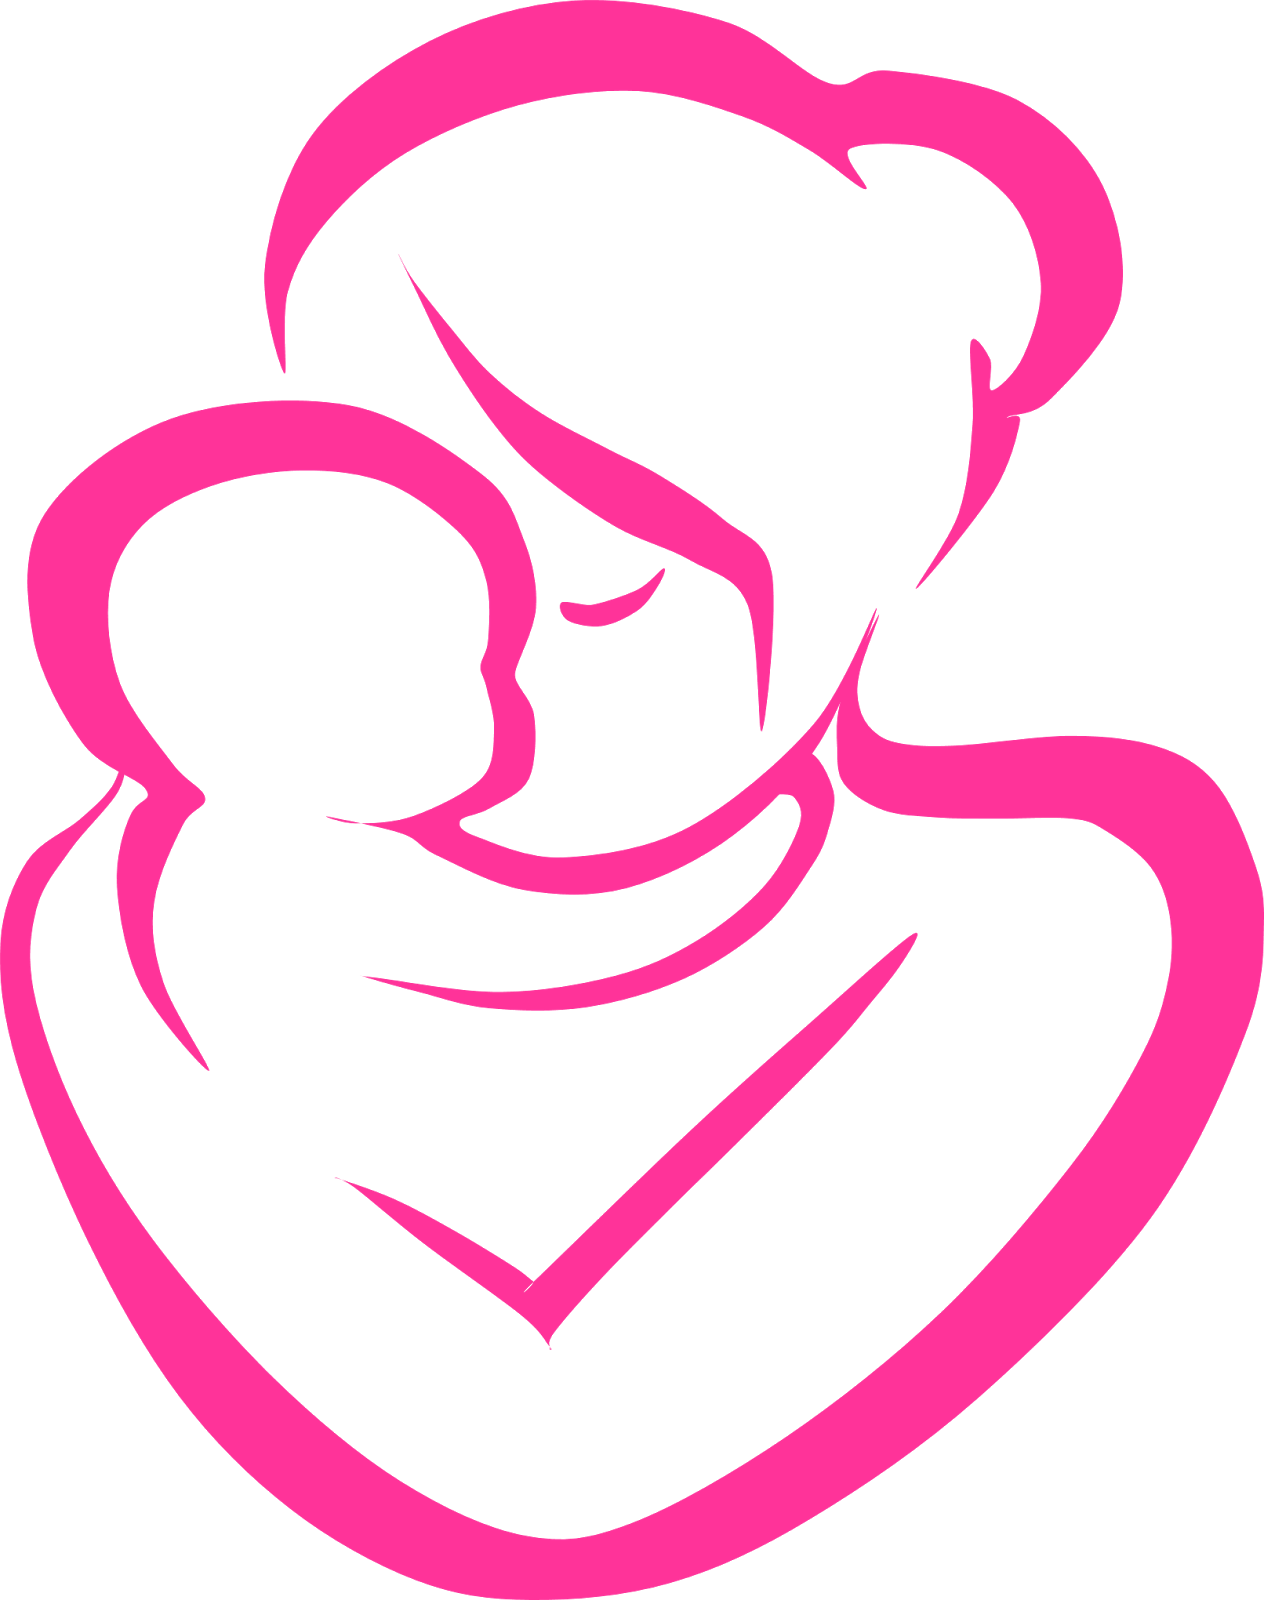 Transparent Background Mom And Baby Clipart.